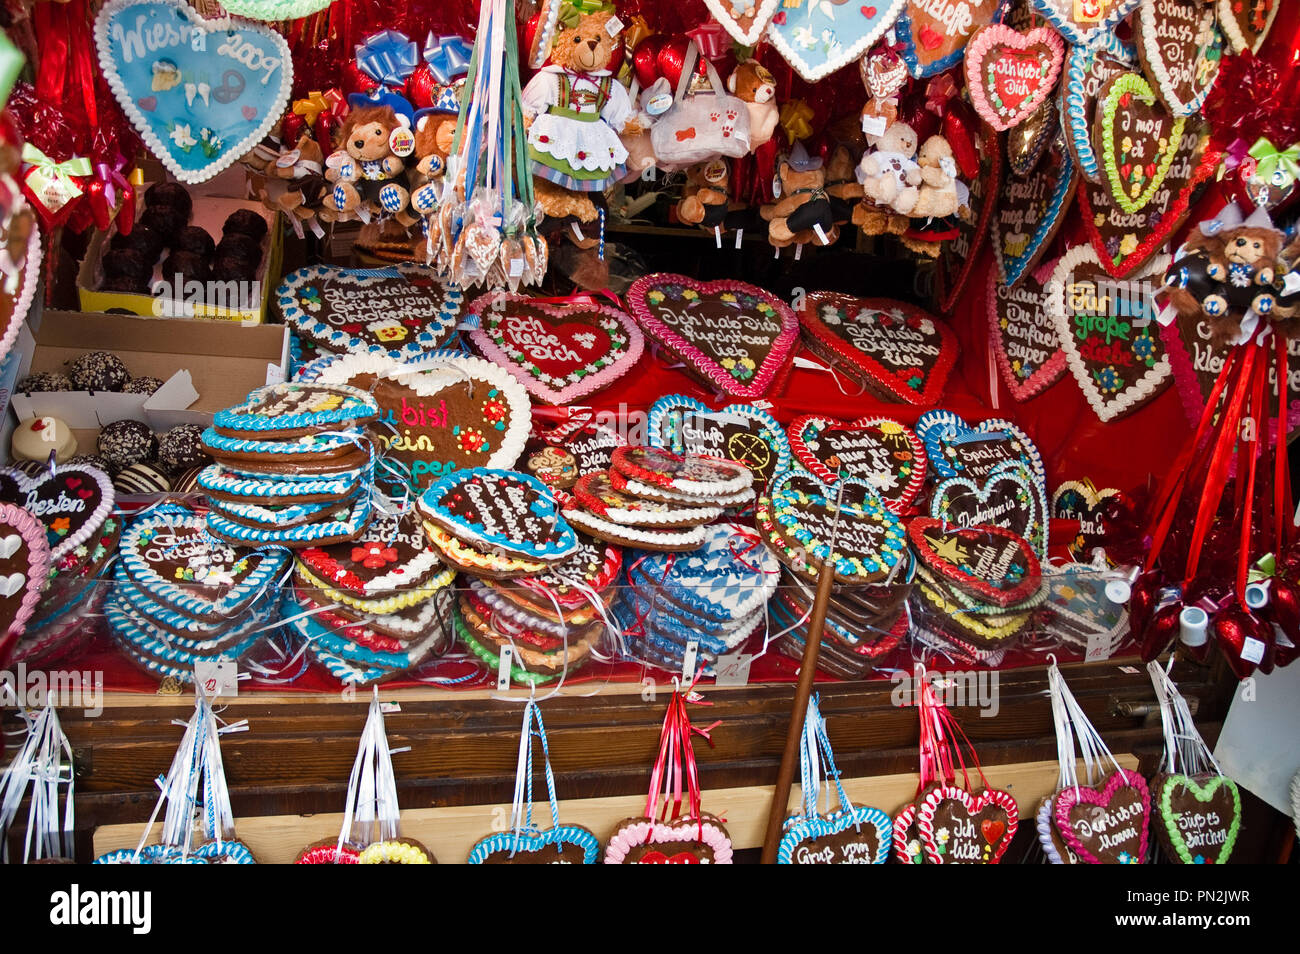 traditional gingerbread hearts at Oktoberfest in Munich, Germany - Stock Image